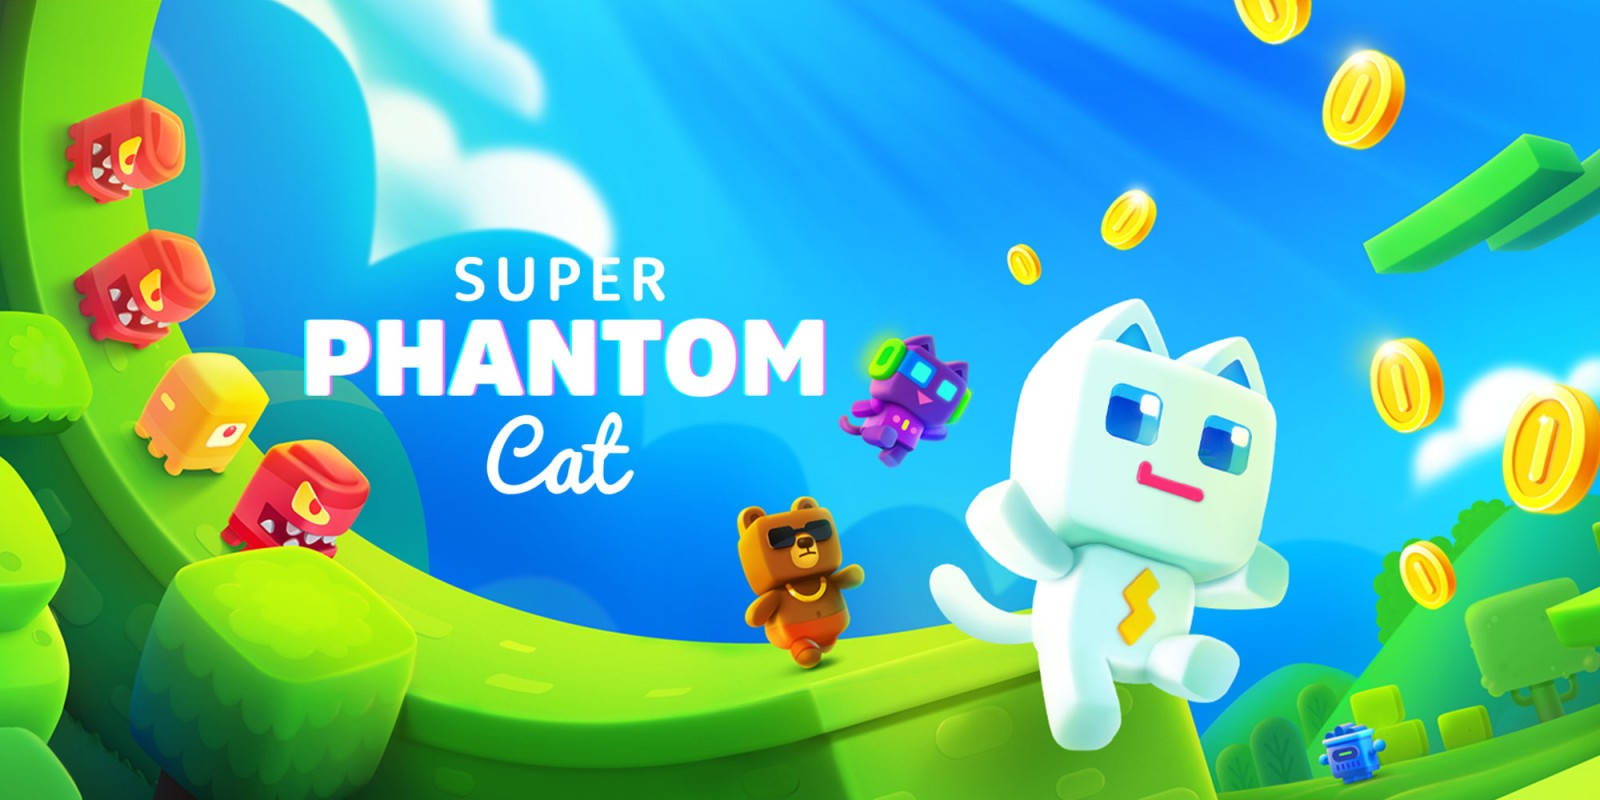 Super Phantom Cat Requirements - The Cryd's Daily